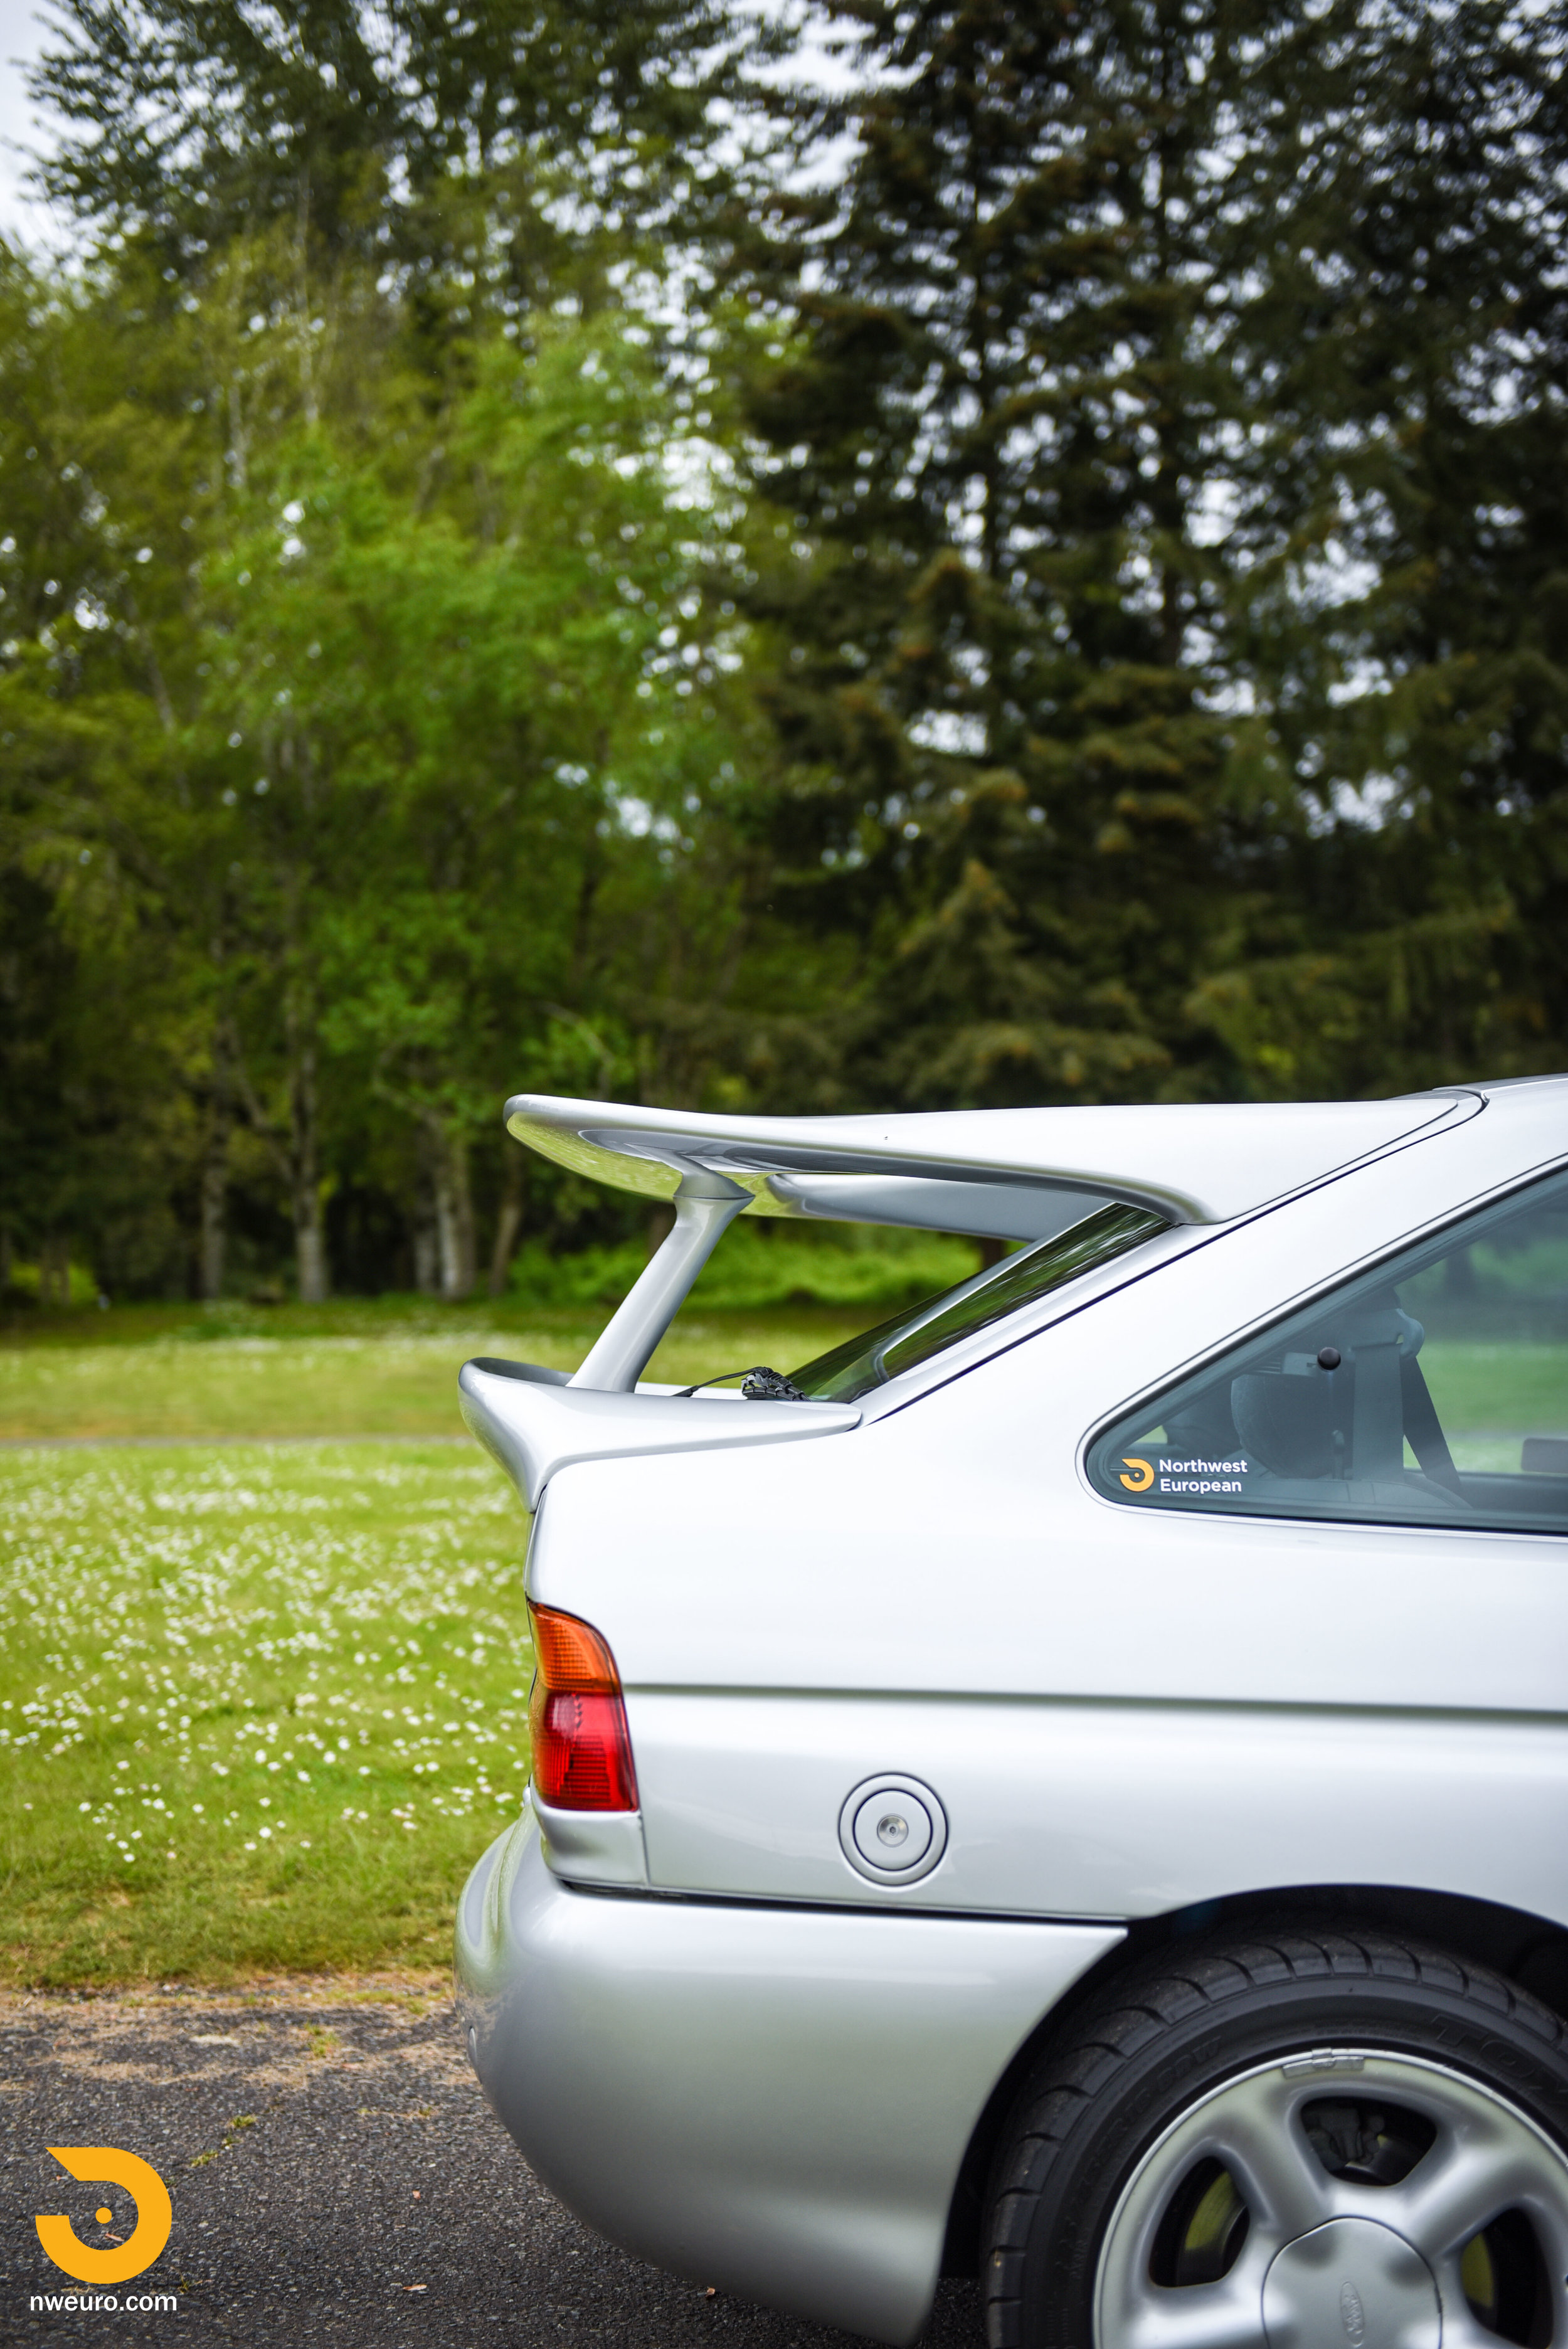 1995 Ford Escort Cosworth RS Silver-7.jpg